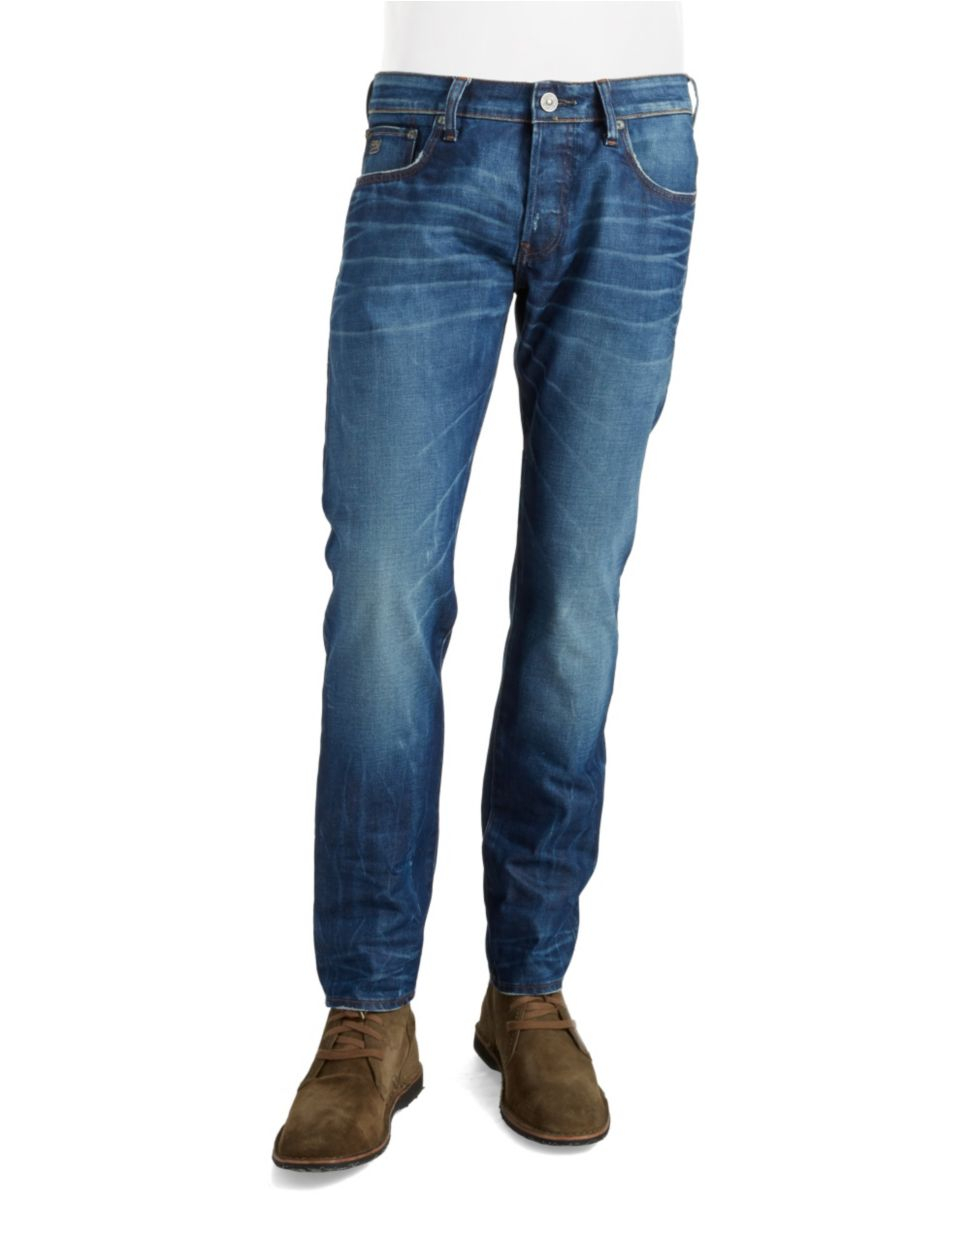 g star raw 3301 tapered fit jeans in blue for men lyst. Black Bedroom Furniture Sets. Home Design Ideas